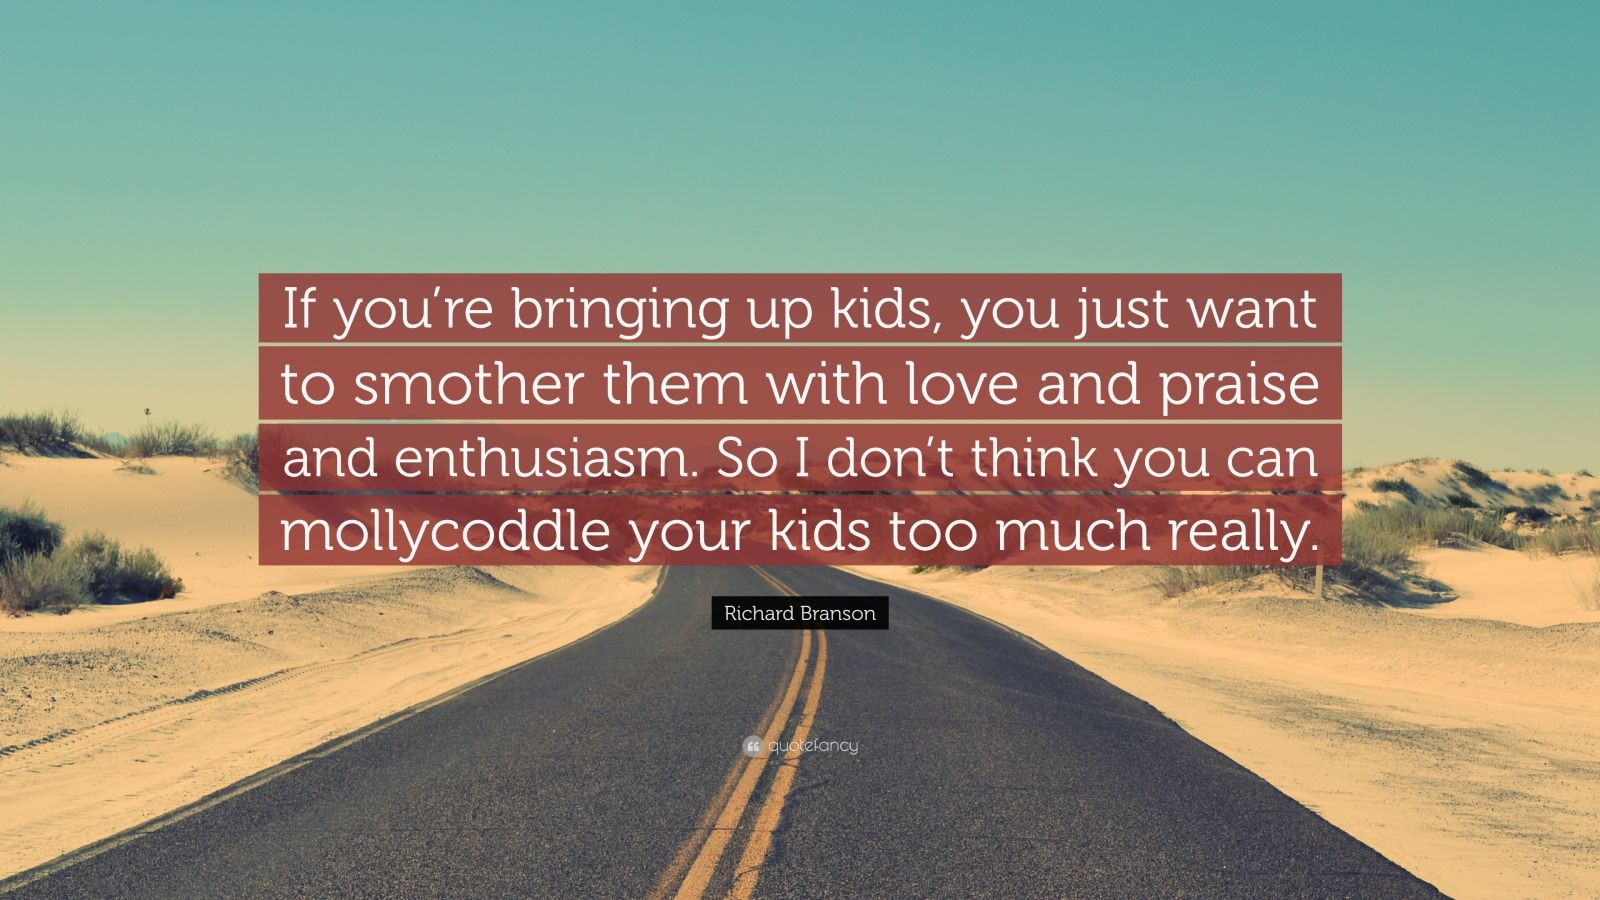 """Richard Branson Quote: """"If you're bringing up kids, you just want to smother them with love and praise and enthusiasm. So I don't think you can mollycoddle your kids too much really."""""""